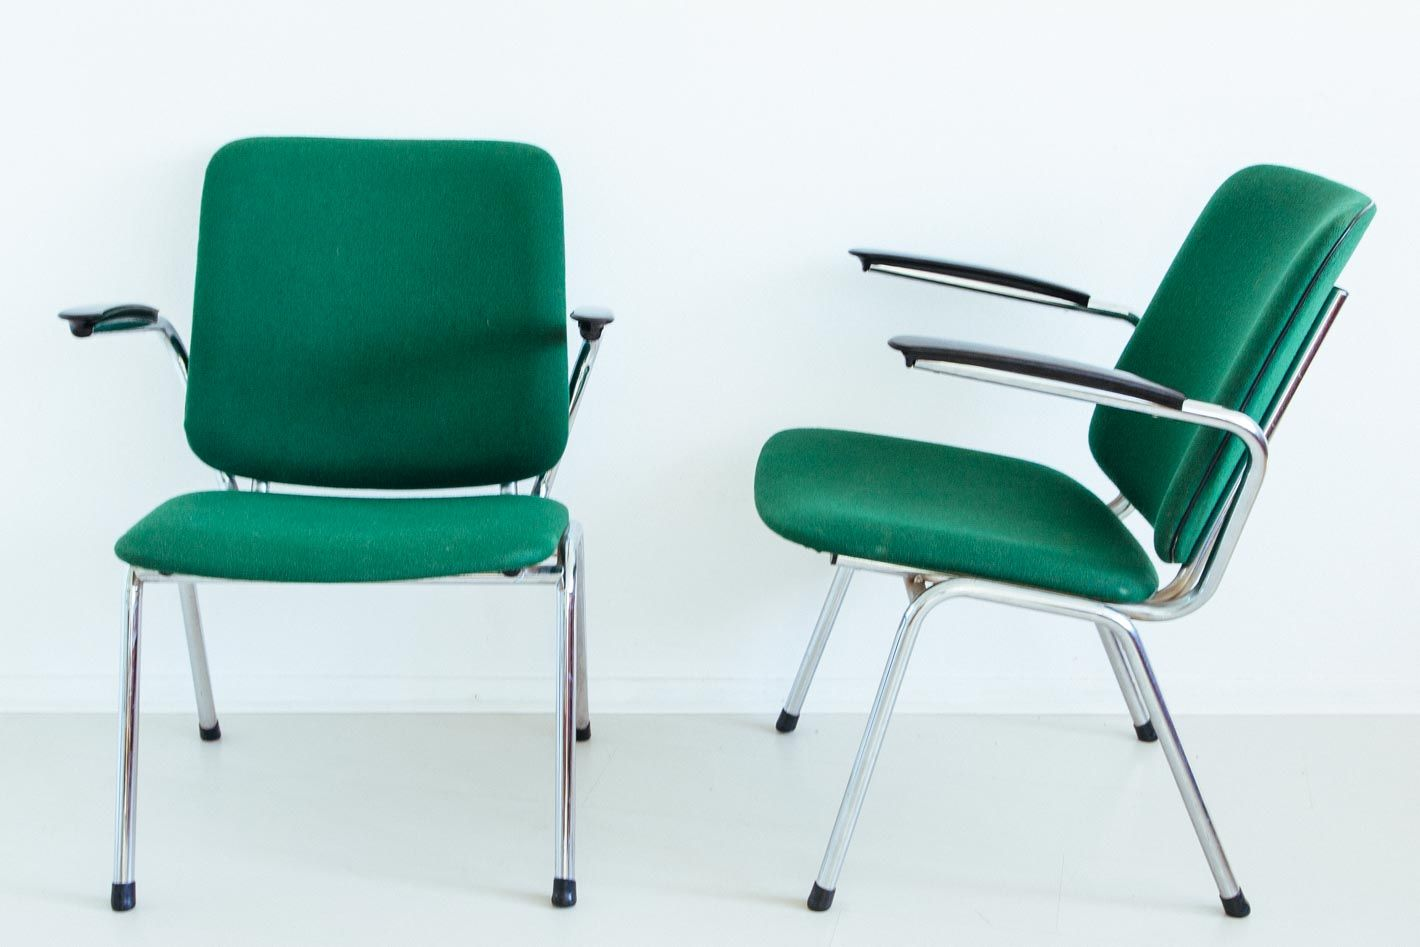 Lounge Chairs by Gebr de Wit Set of 2 for sale at Pamono